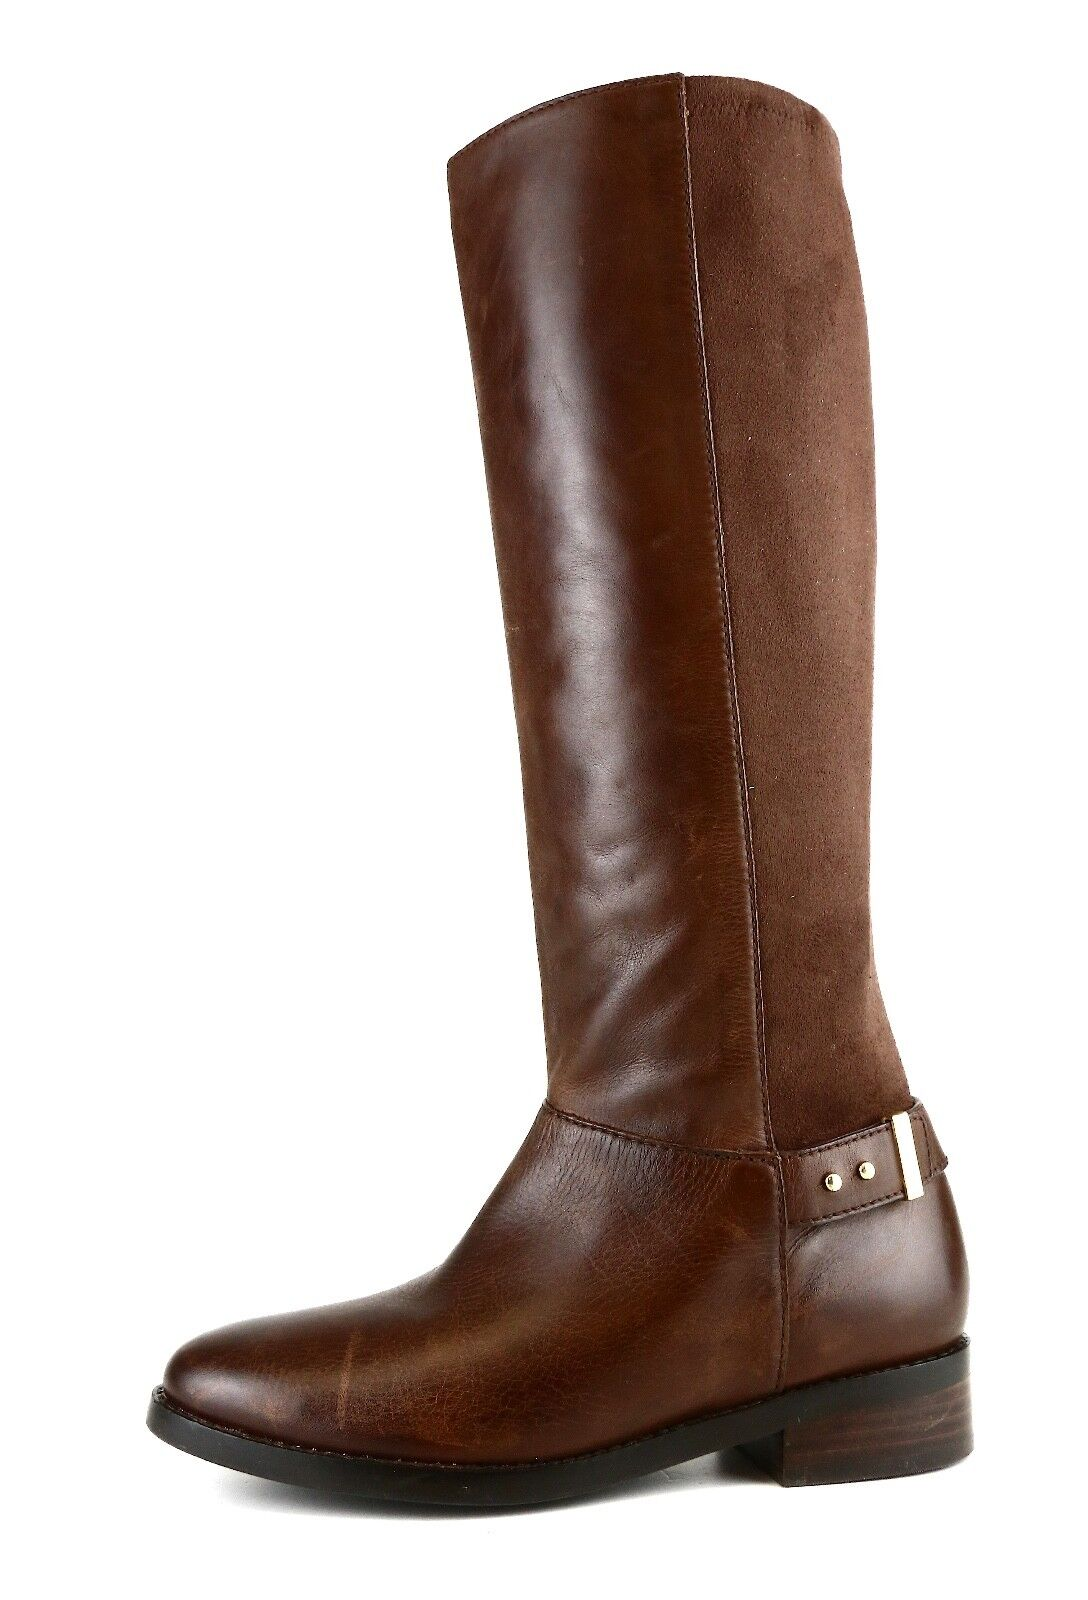 Cole Haan Adler Tall Leather Suede Boot Brown Women Sz 5.5 B 5560